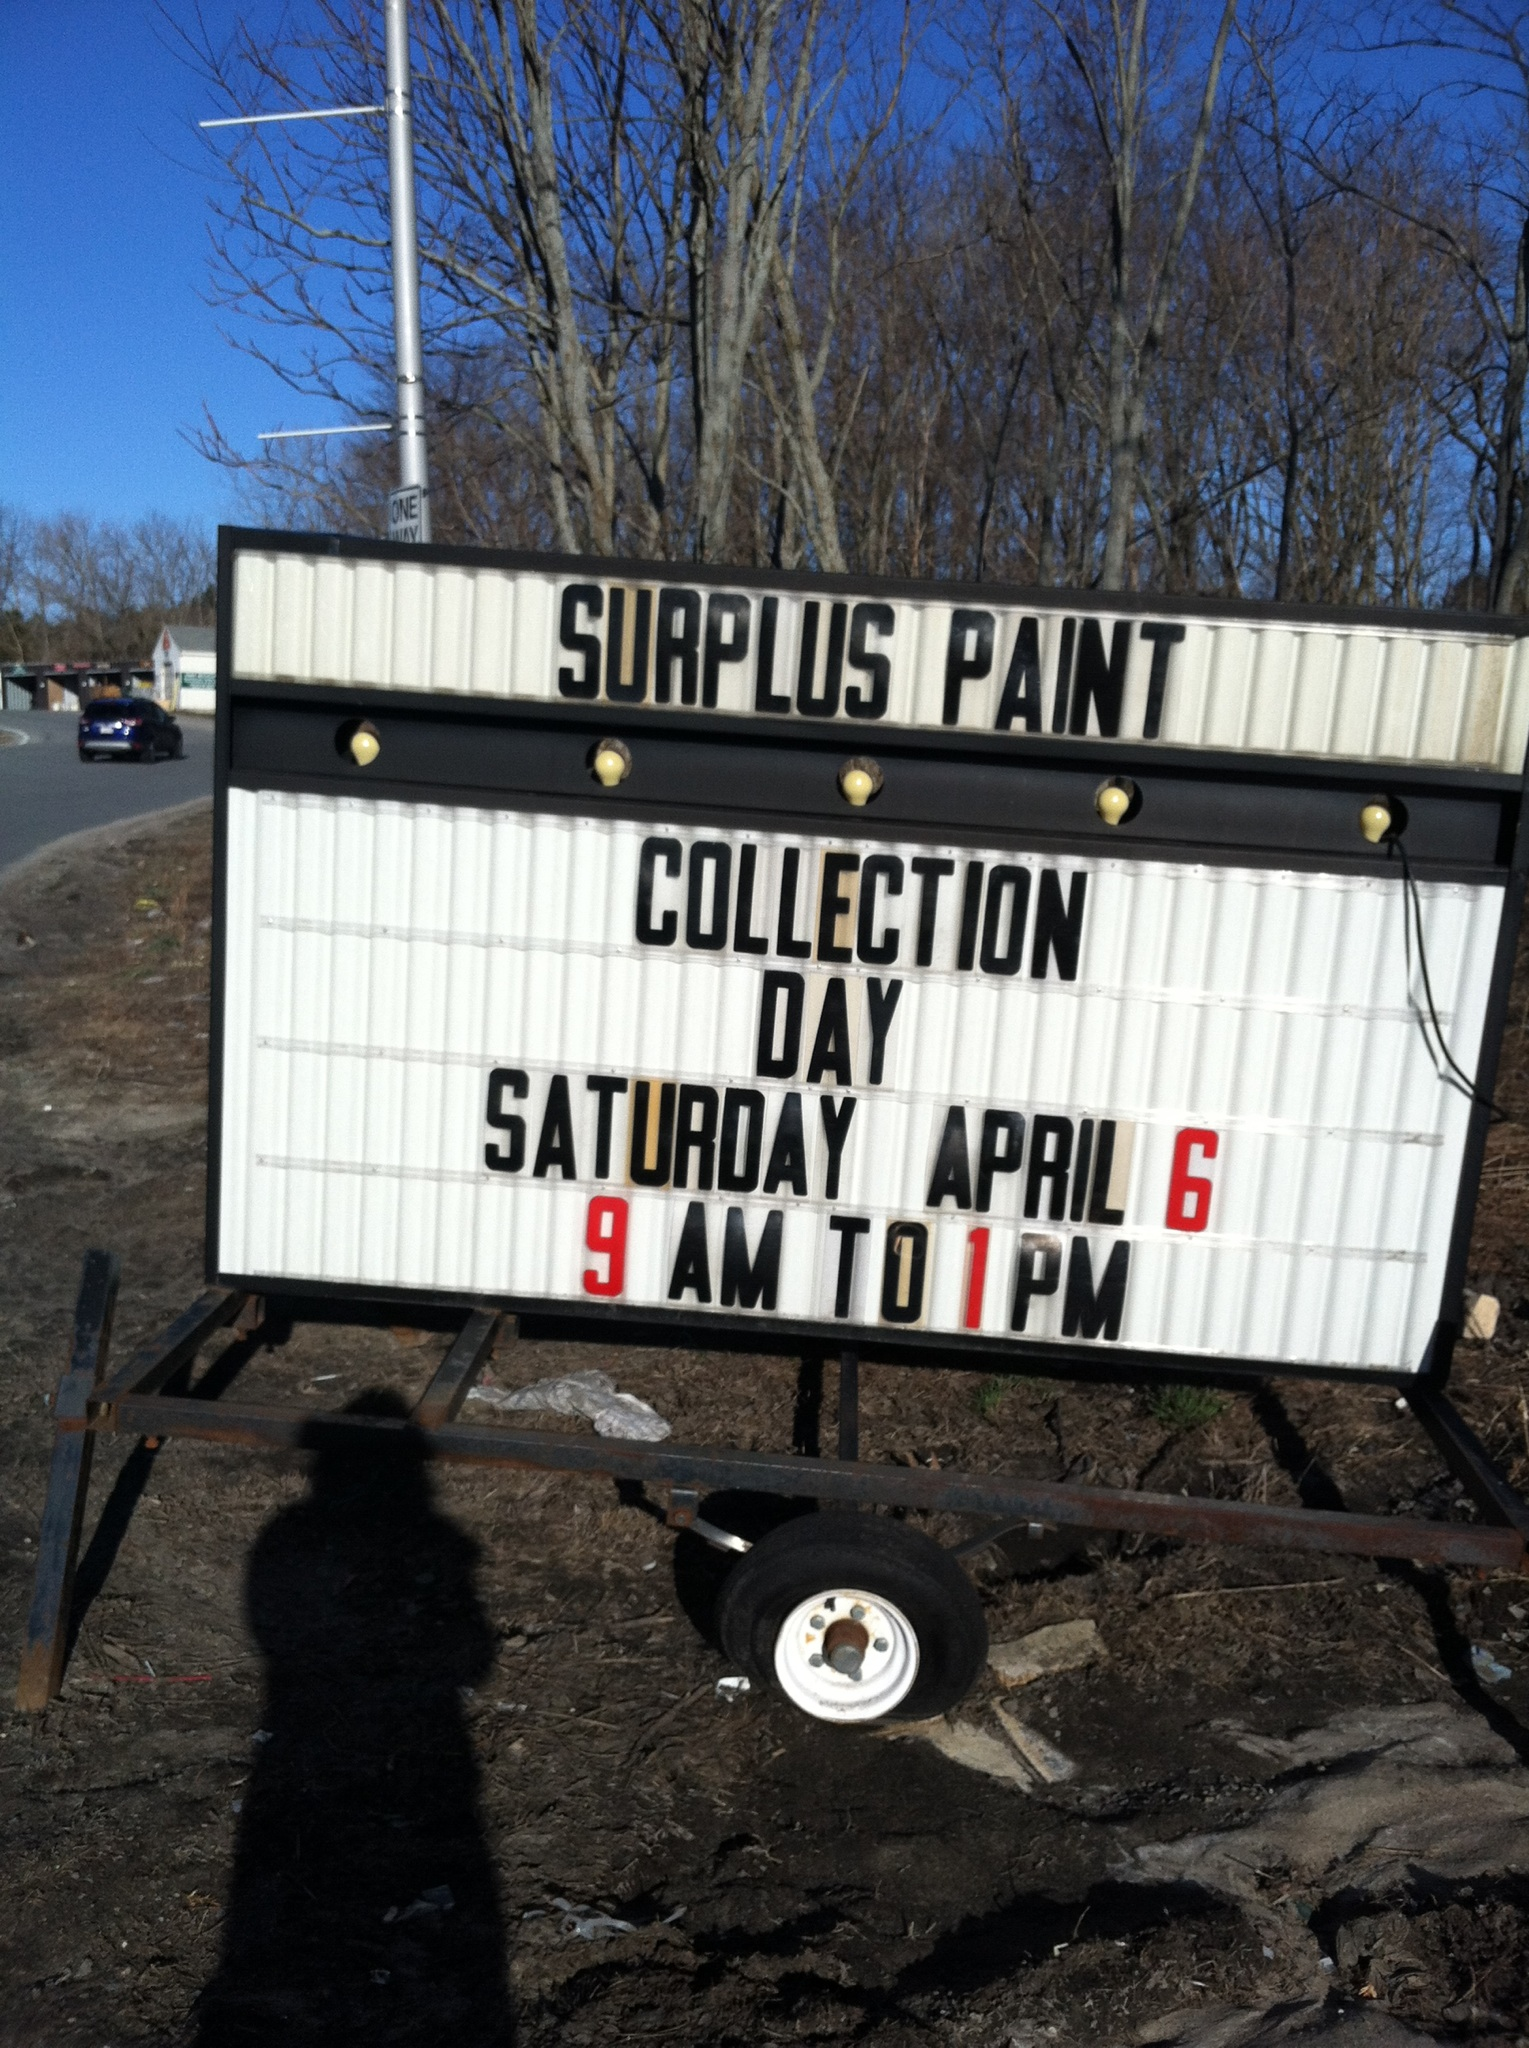 Wellesley free library comes alive with student art the swellesley report news about - Painting tips will make home come alive ...